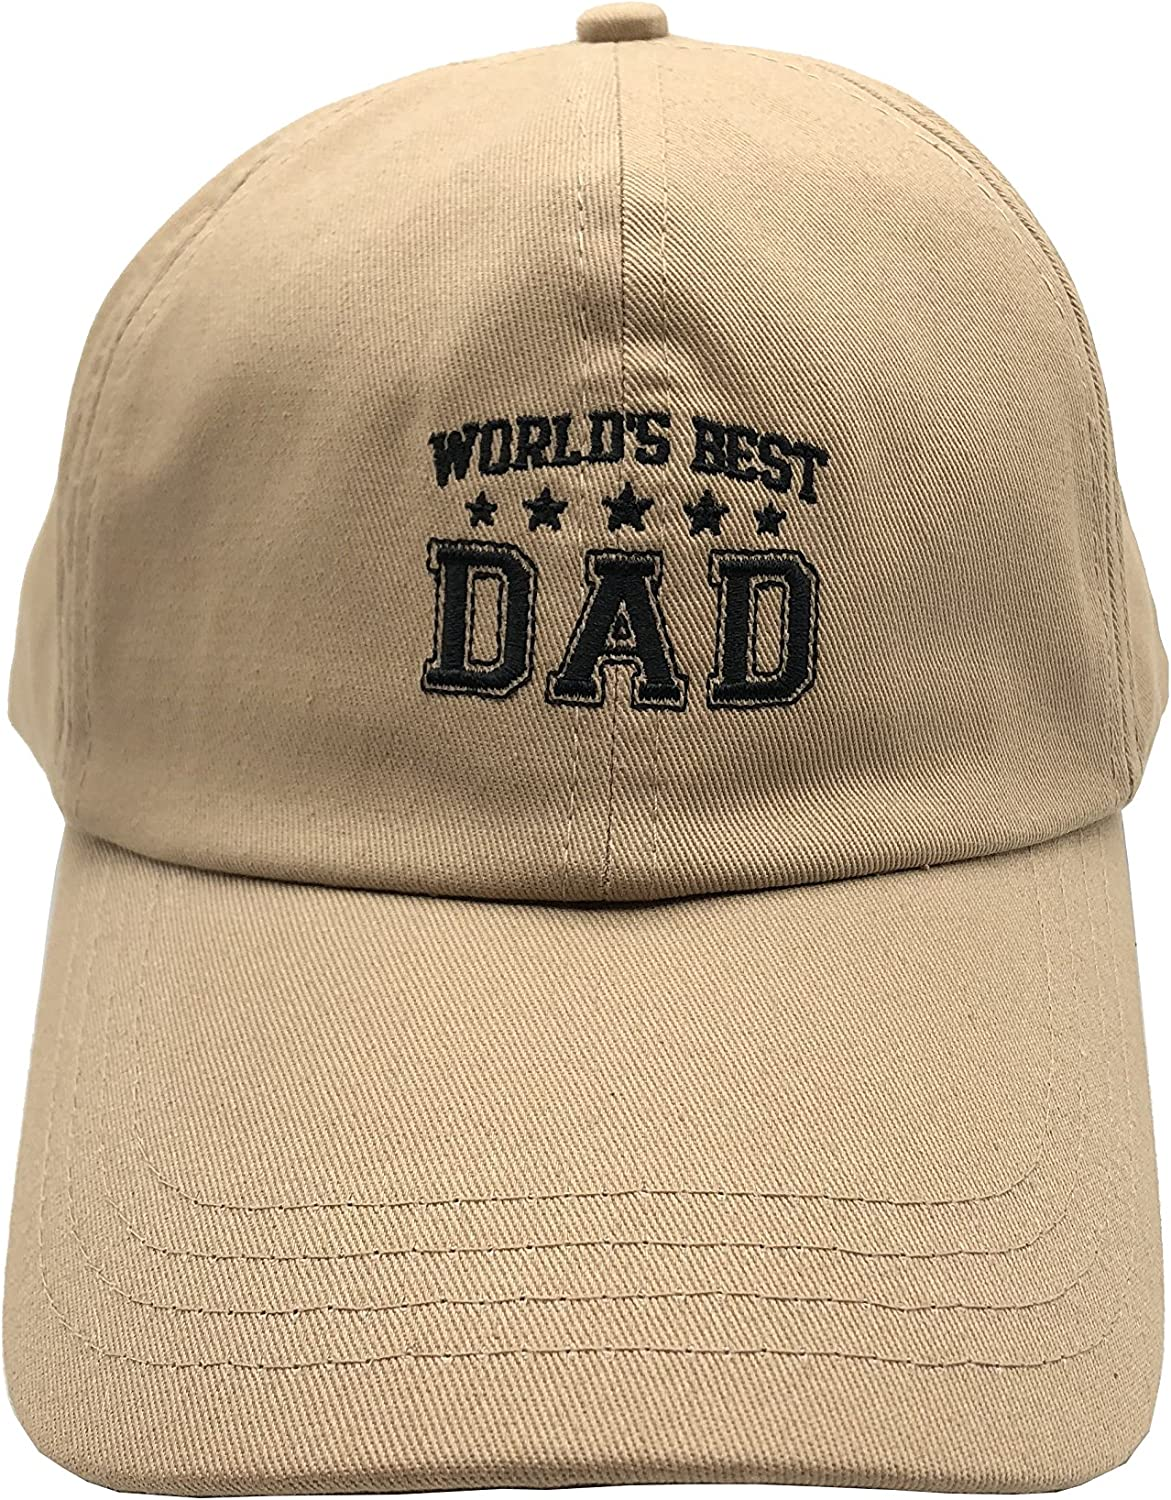 Game Hats Father's Day Greatest Dad Hat 100% Cotton Cap 3D Embroidery Unstructured Beige